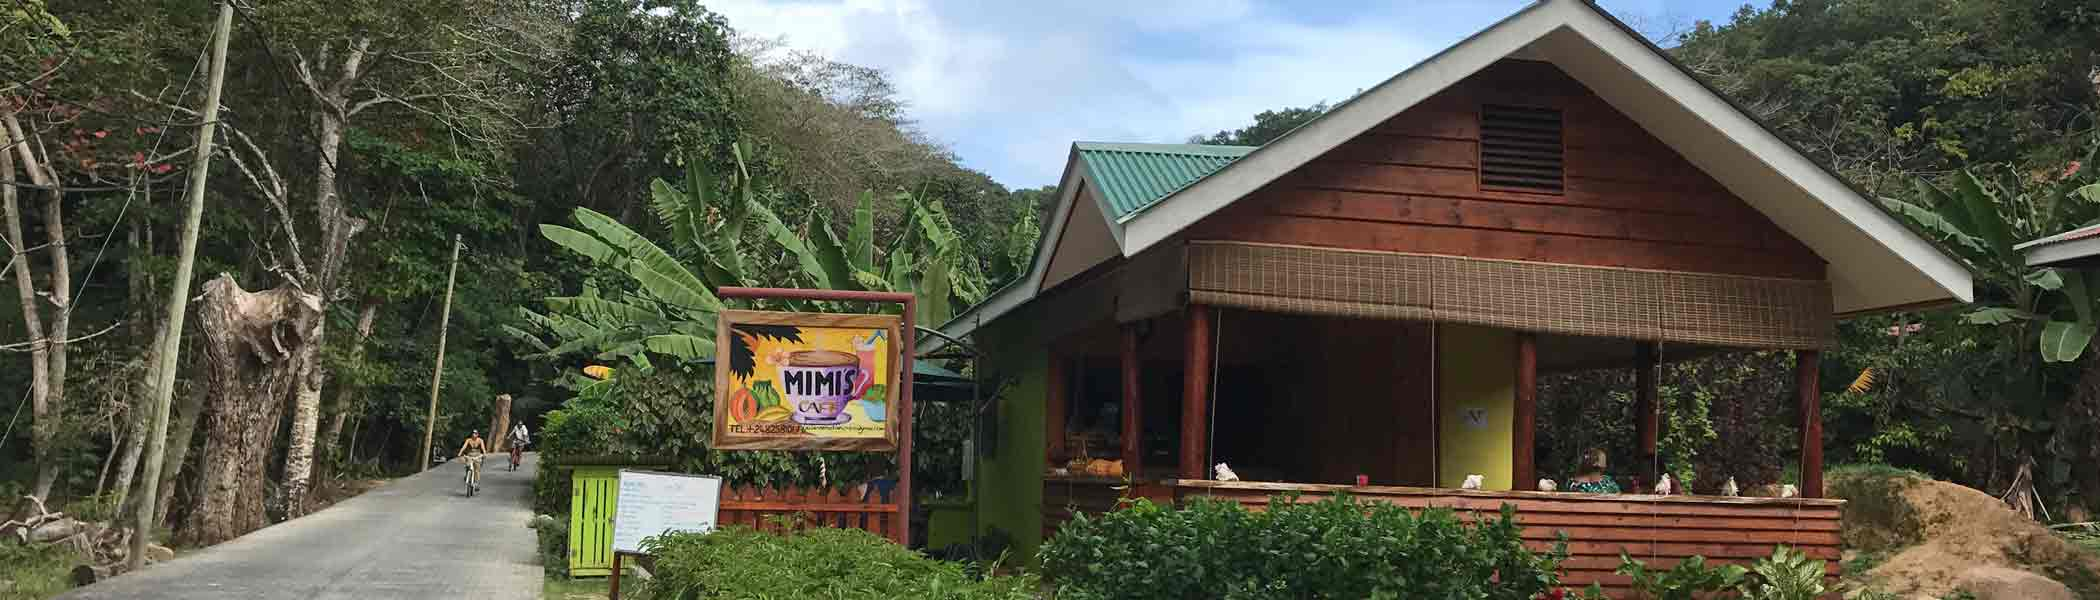 mimis-cafe, Bars and restaurants in Seychelles Islands